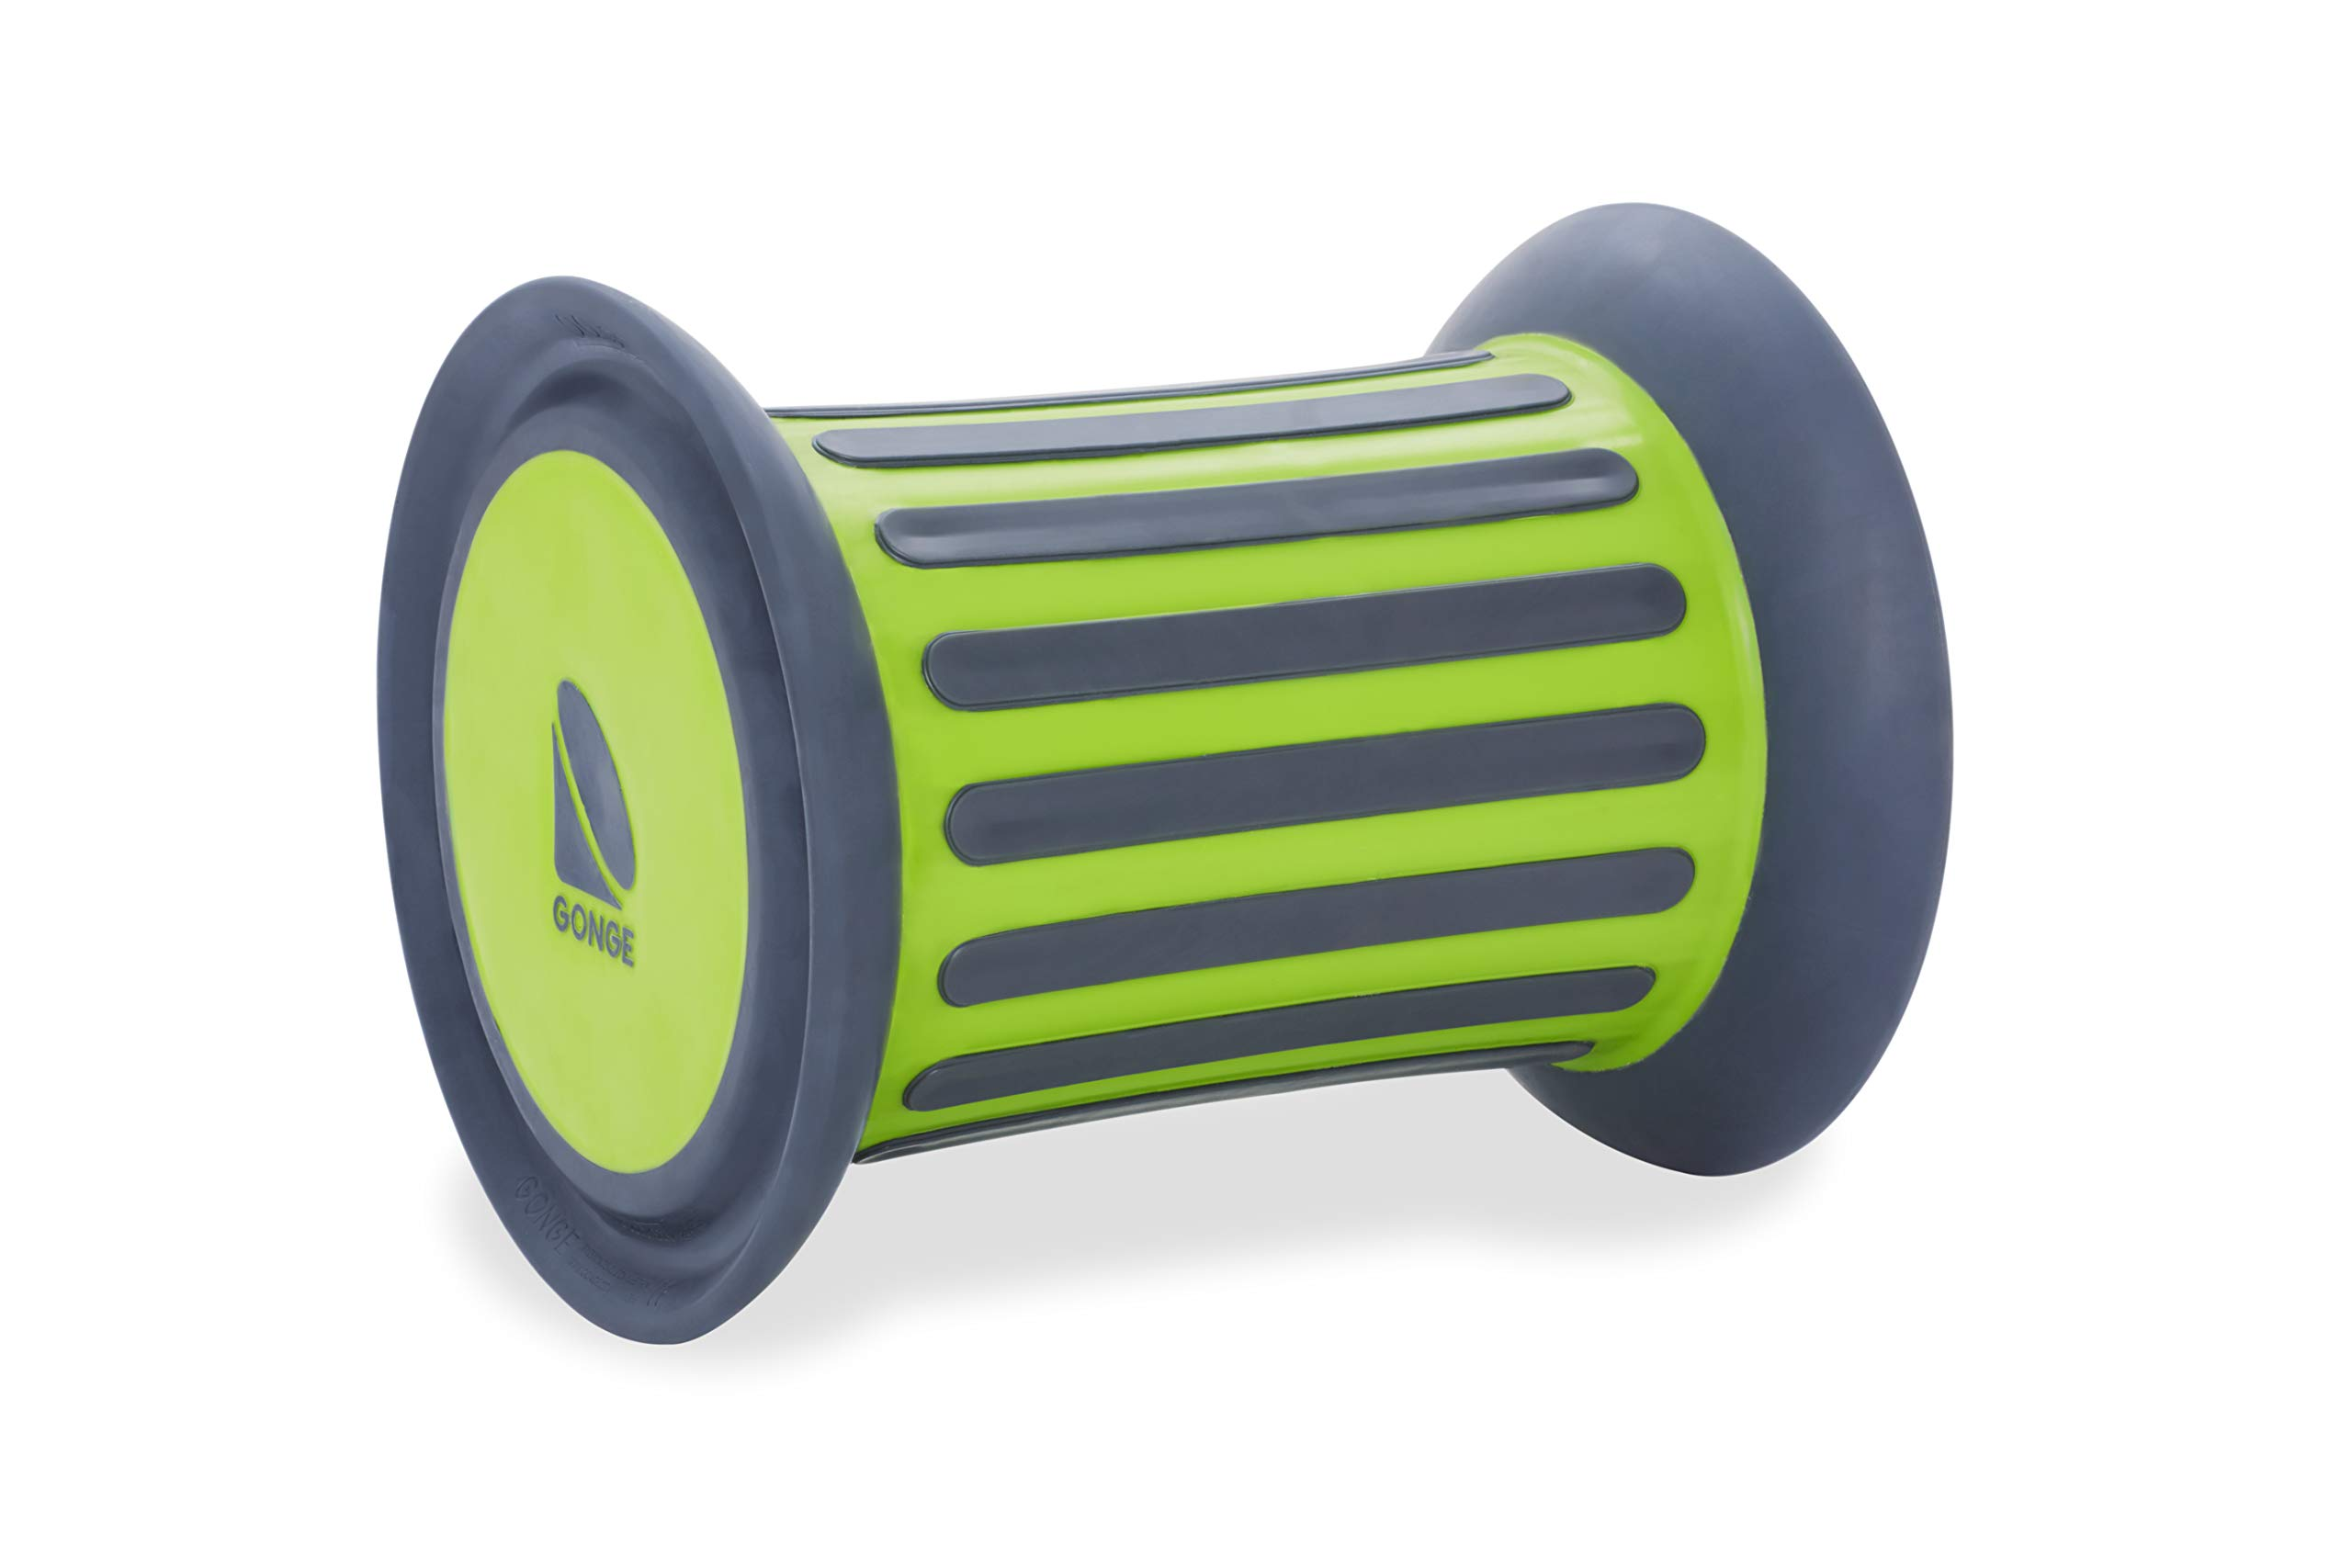 American Educational Products G-2266 Roller with Sand Activity Set, 14.5'' Height, 14.5'' Wide, 14.5'' Length